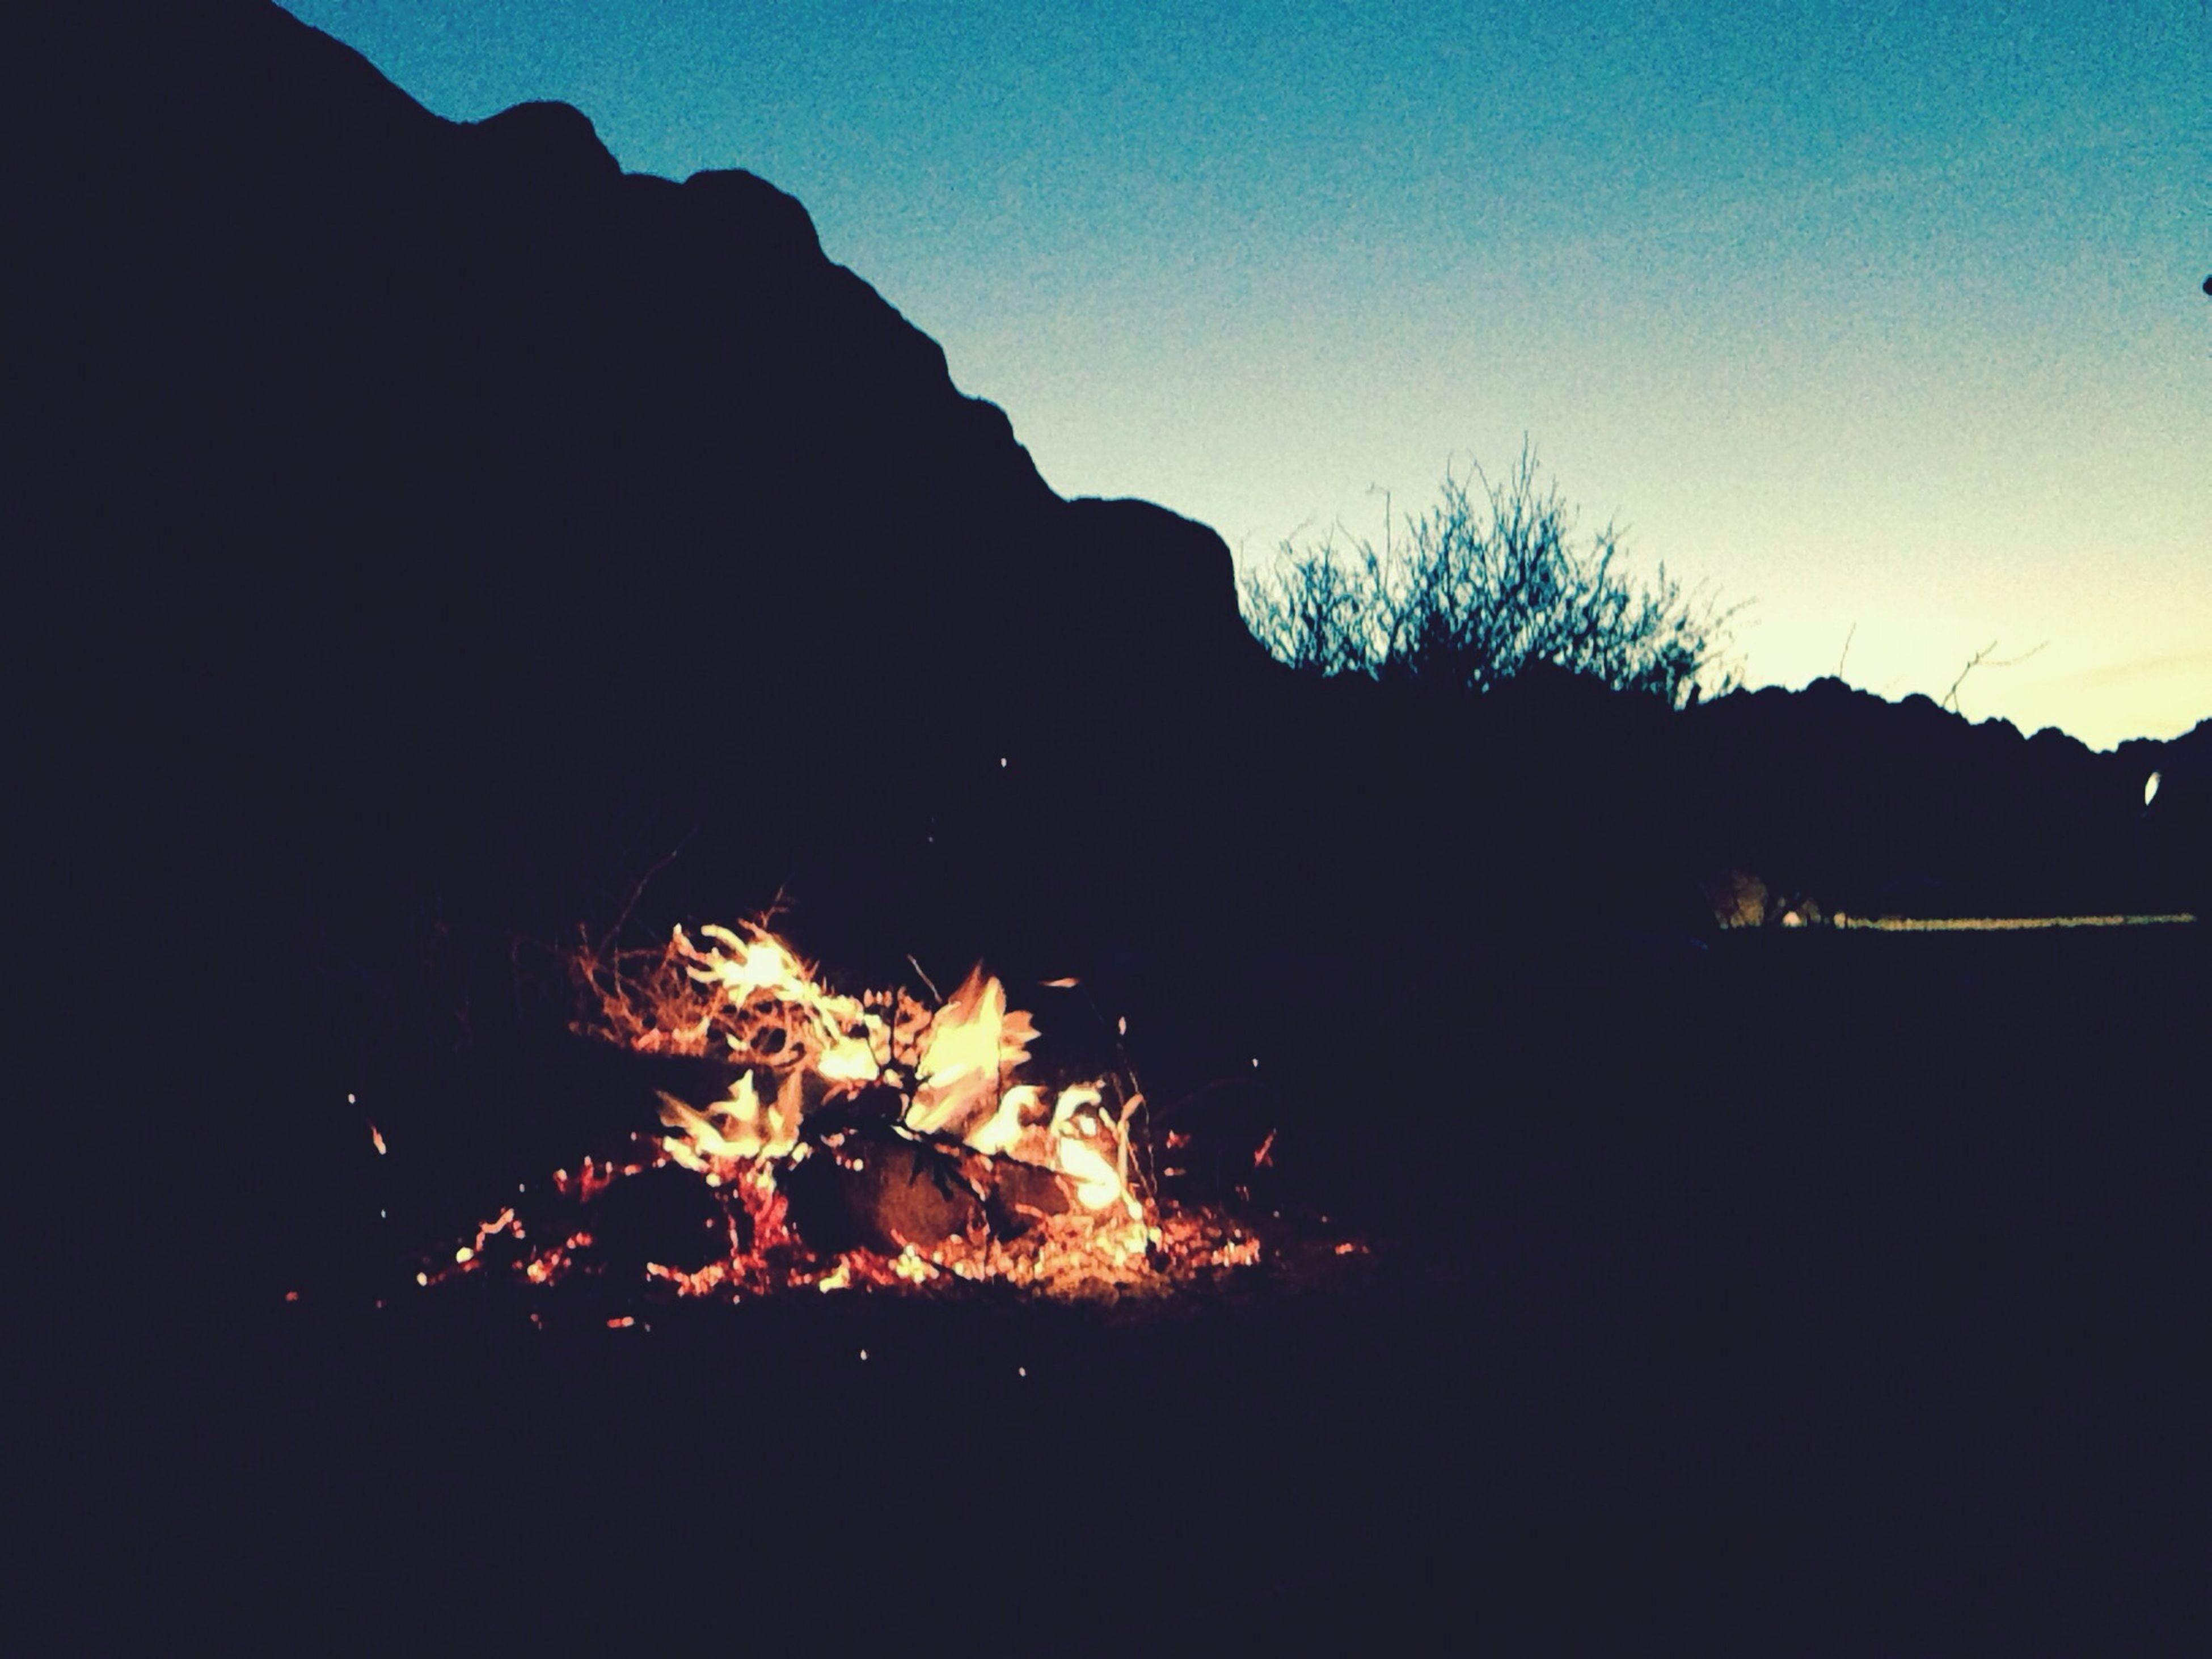 night, silhouette, sky, clear sky, tree, illuminated, dark, copy space, glowing, fire - natural phenomenon, nature, tranquility, outdoors, scenics, tranquil scene, beauty in nature, burning, mountain, no people, low angle view